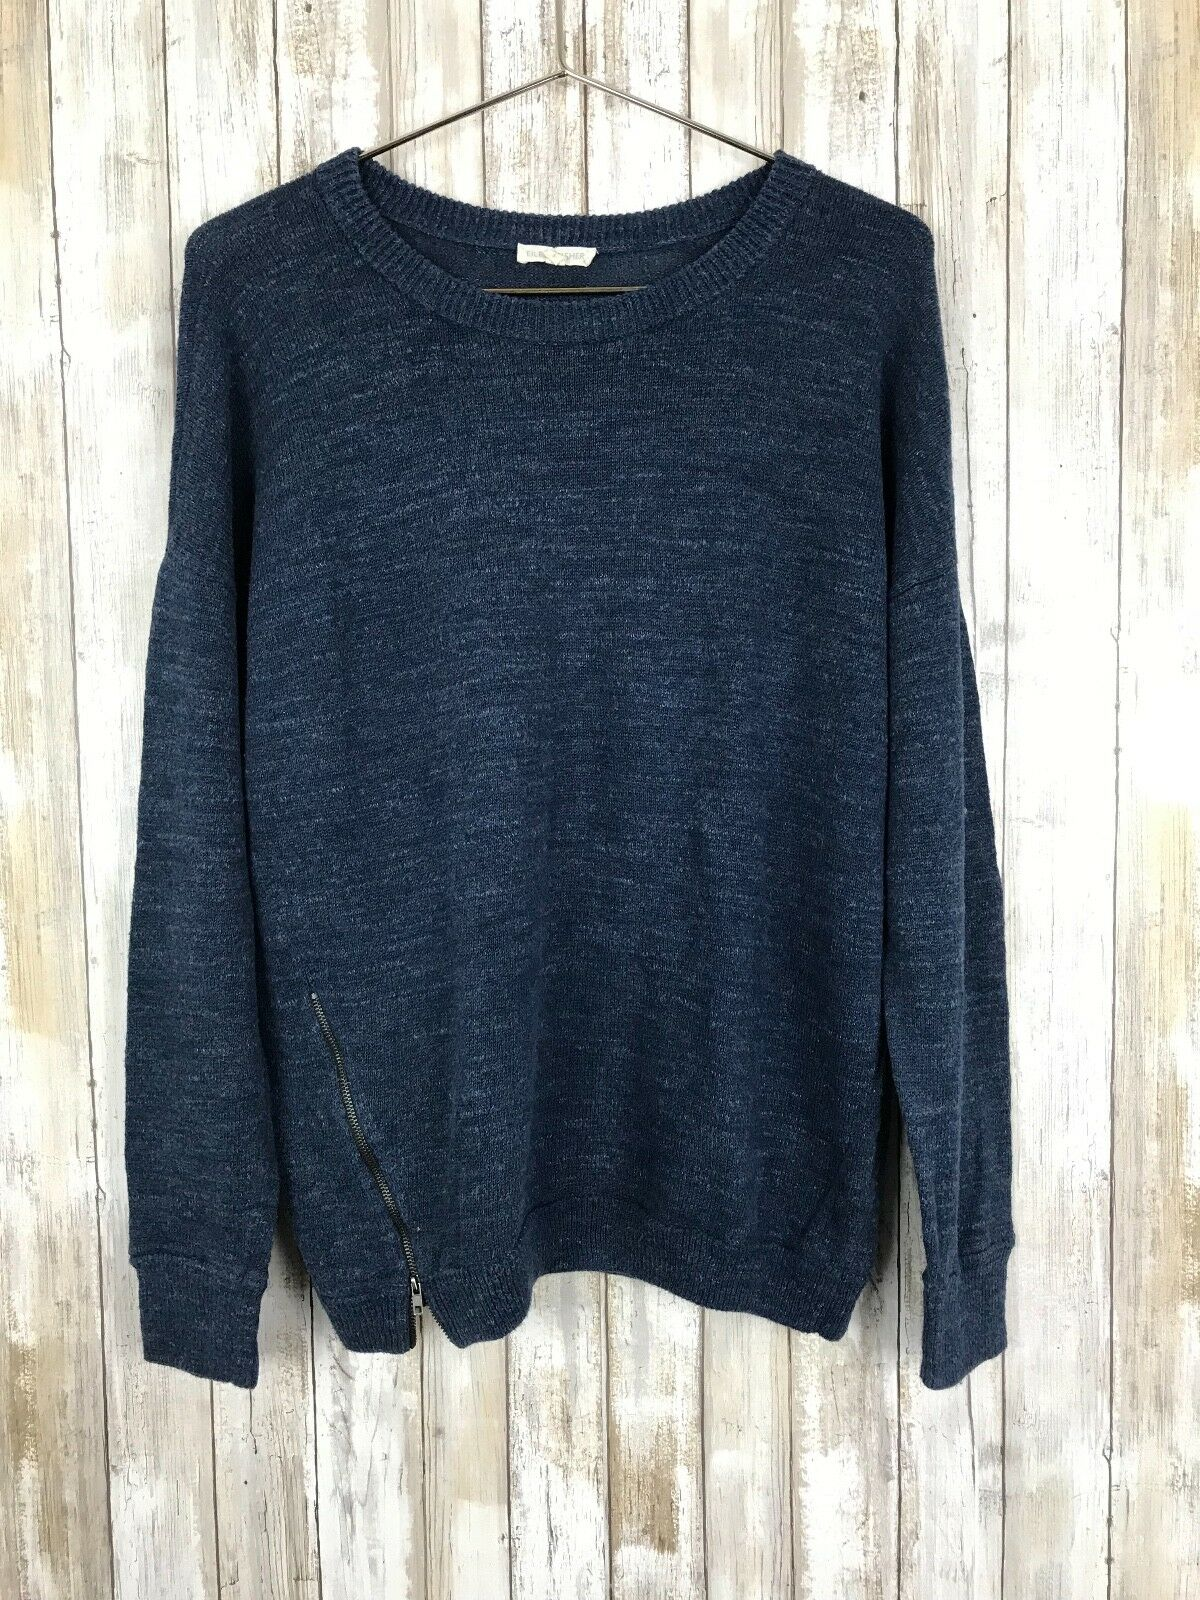 Eileen Fisher Cotton bluee Heathered Heathered Heathered Sweater Side Zipper Oversized Top S Small 5f70b6